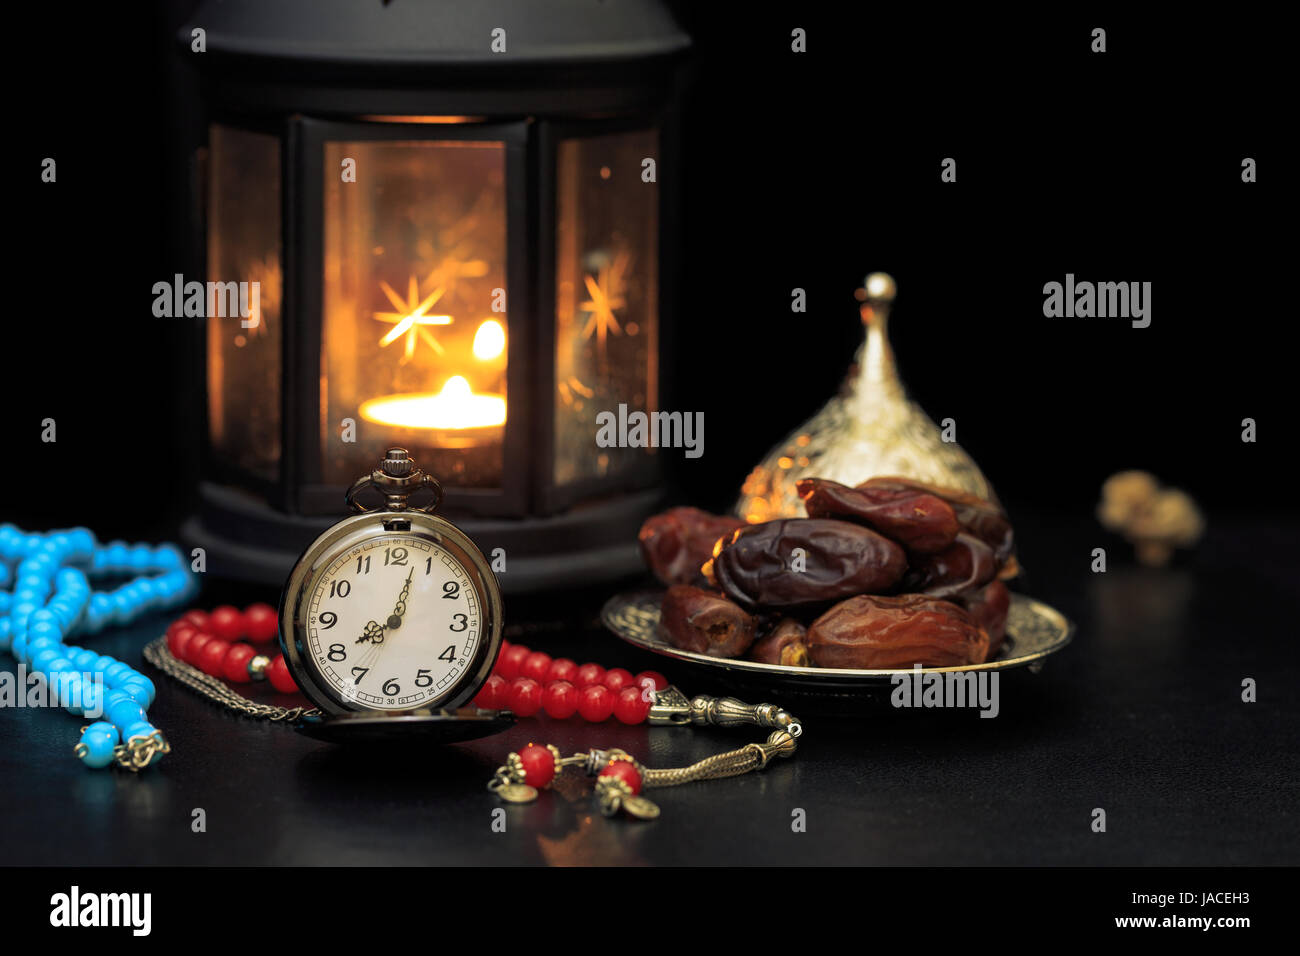 Ramadan concept with dates, pocket watch, rosary and lantern in darkness - Stock Image